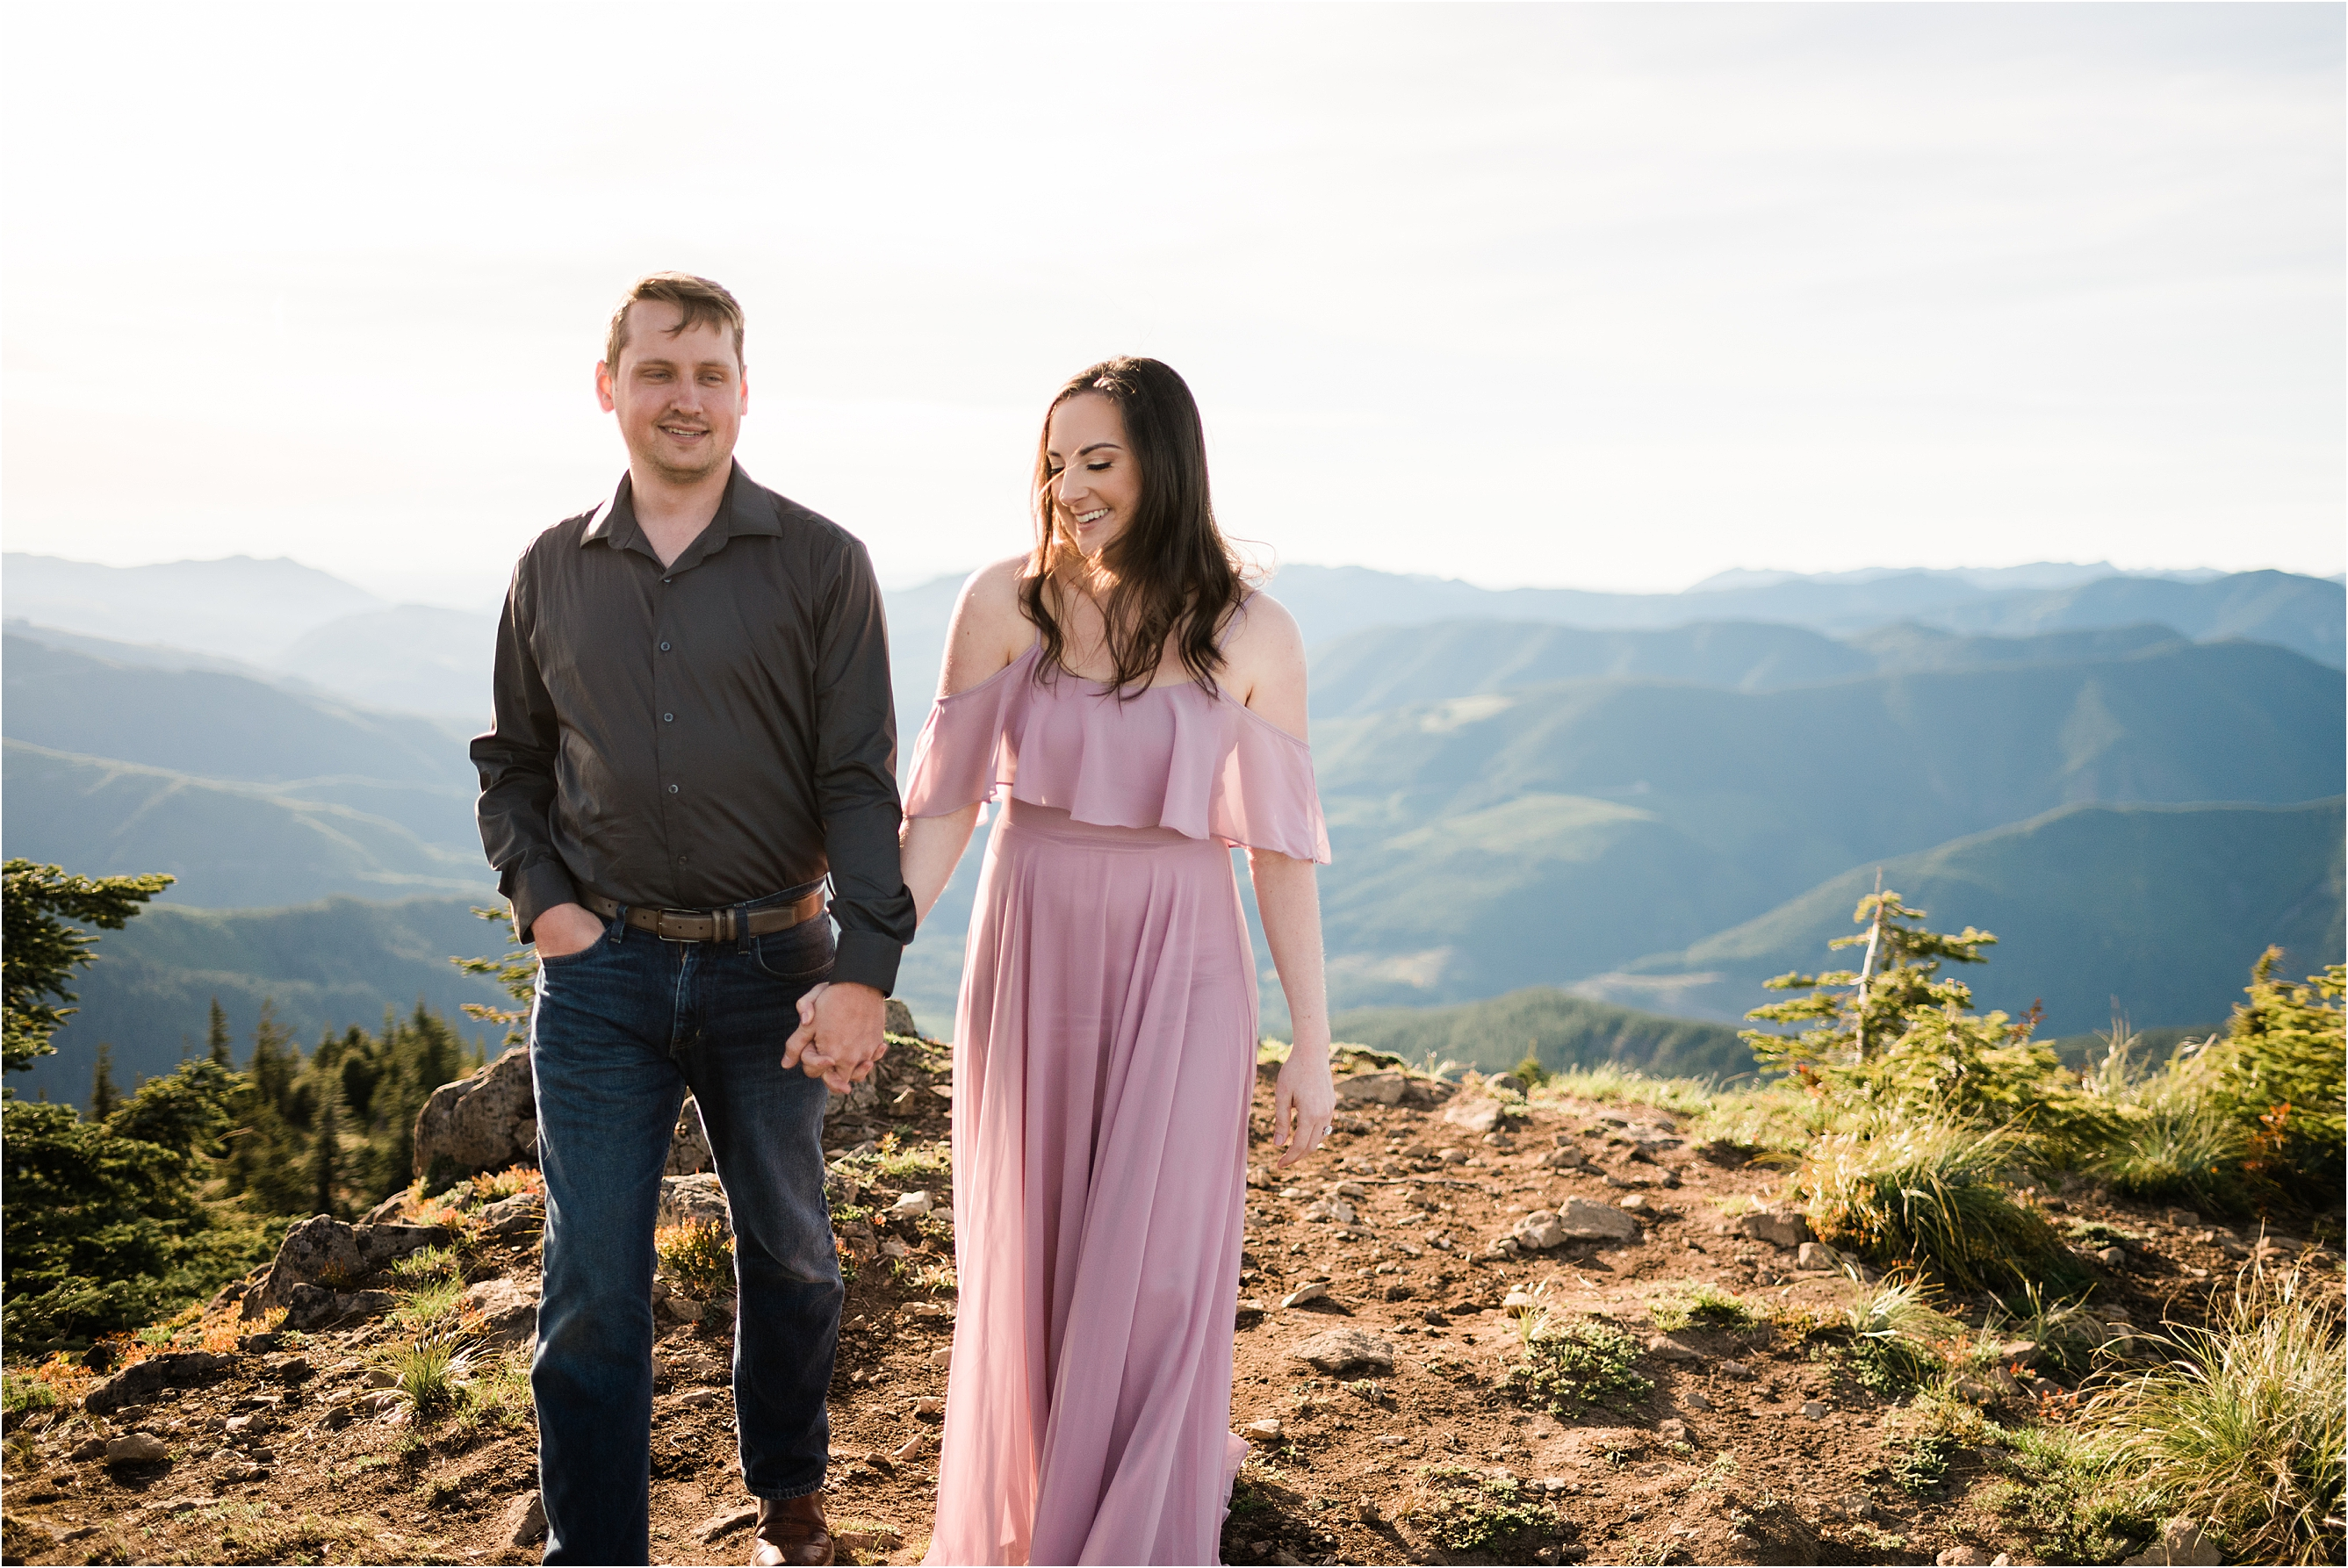 Engagement session at a Washington fire look-out. Image by Forthright Photo, Seattle Photographers.